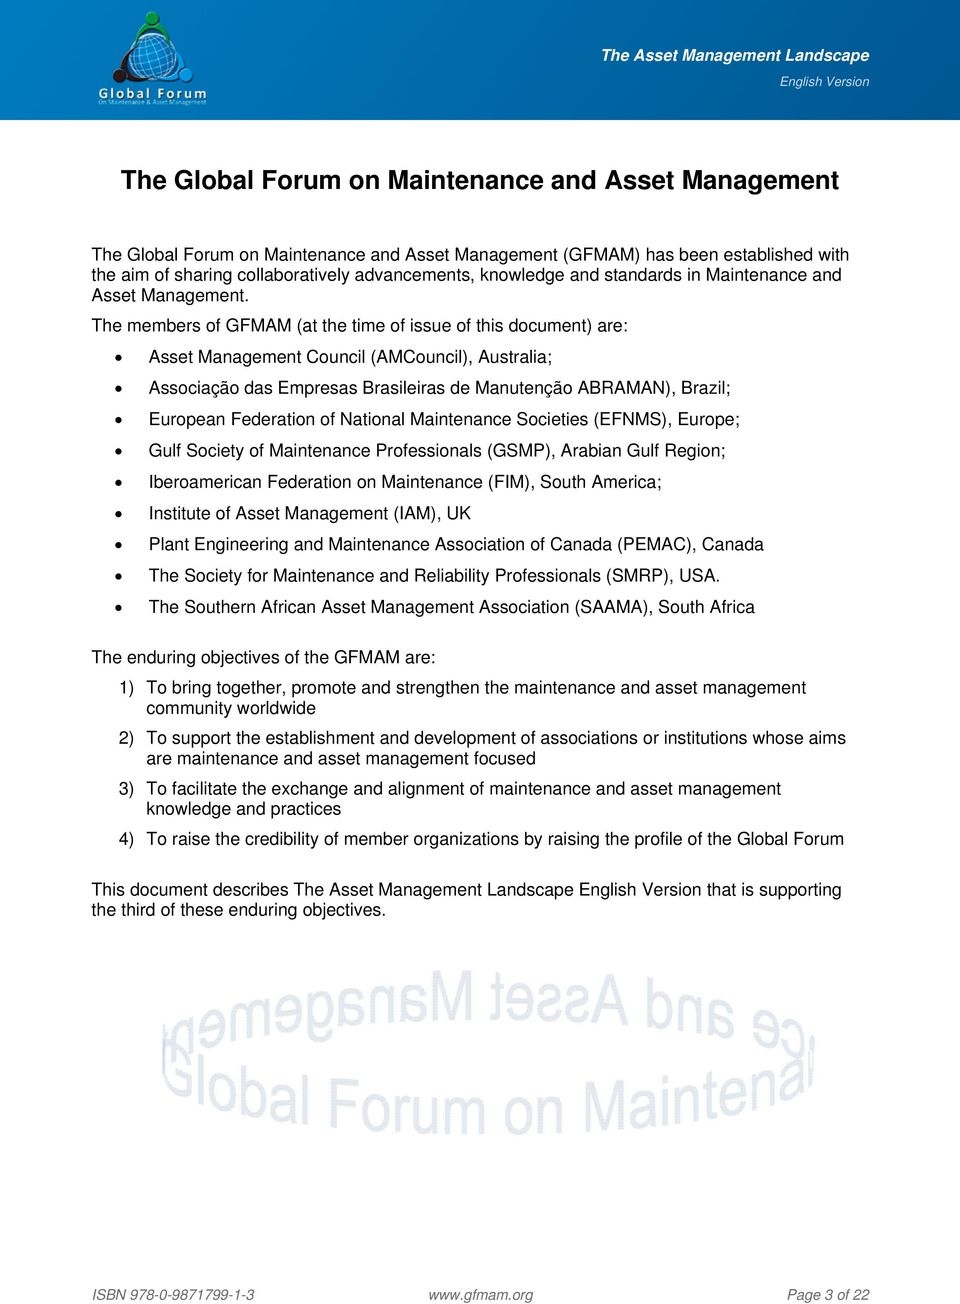 The members of GFMAM (at the time of issue of this document) are: Asset Management Council (AMCouncil), Australia; Associação das Empresas Brasileiras de Manutenção ABRAMAN), Brazil; European